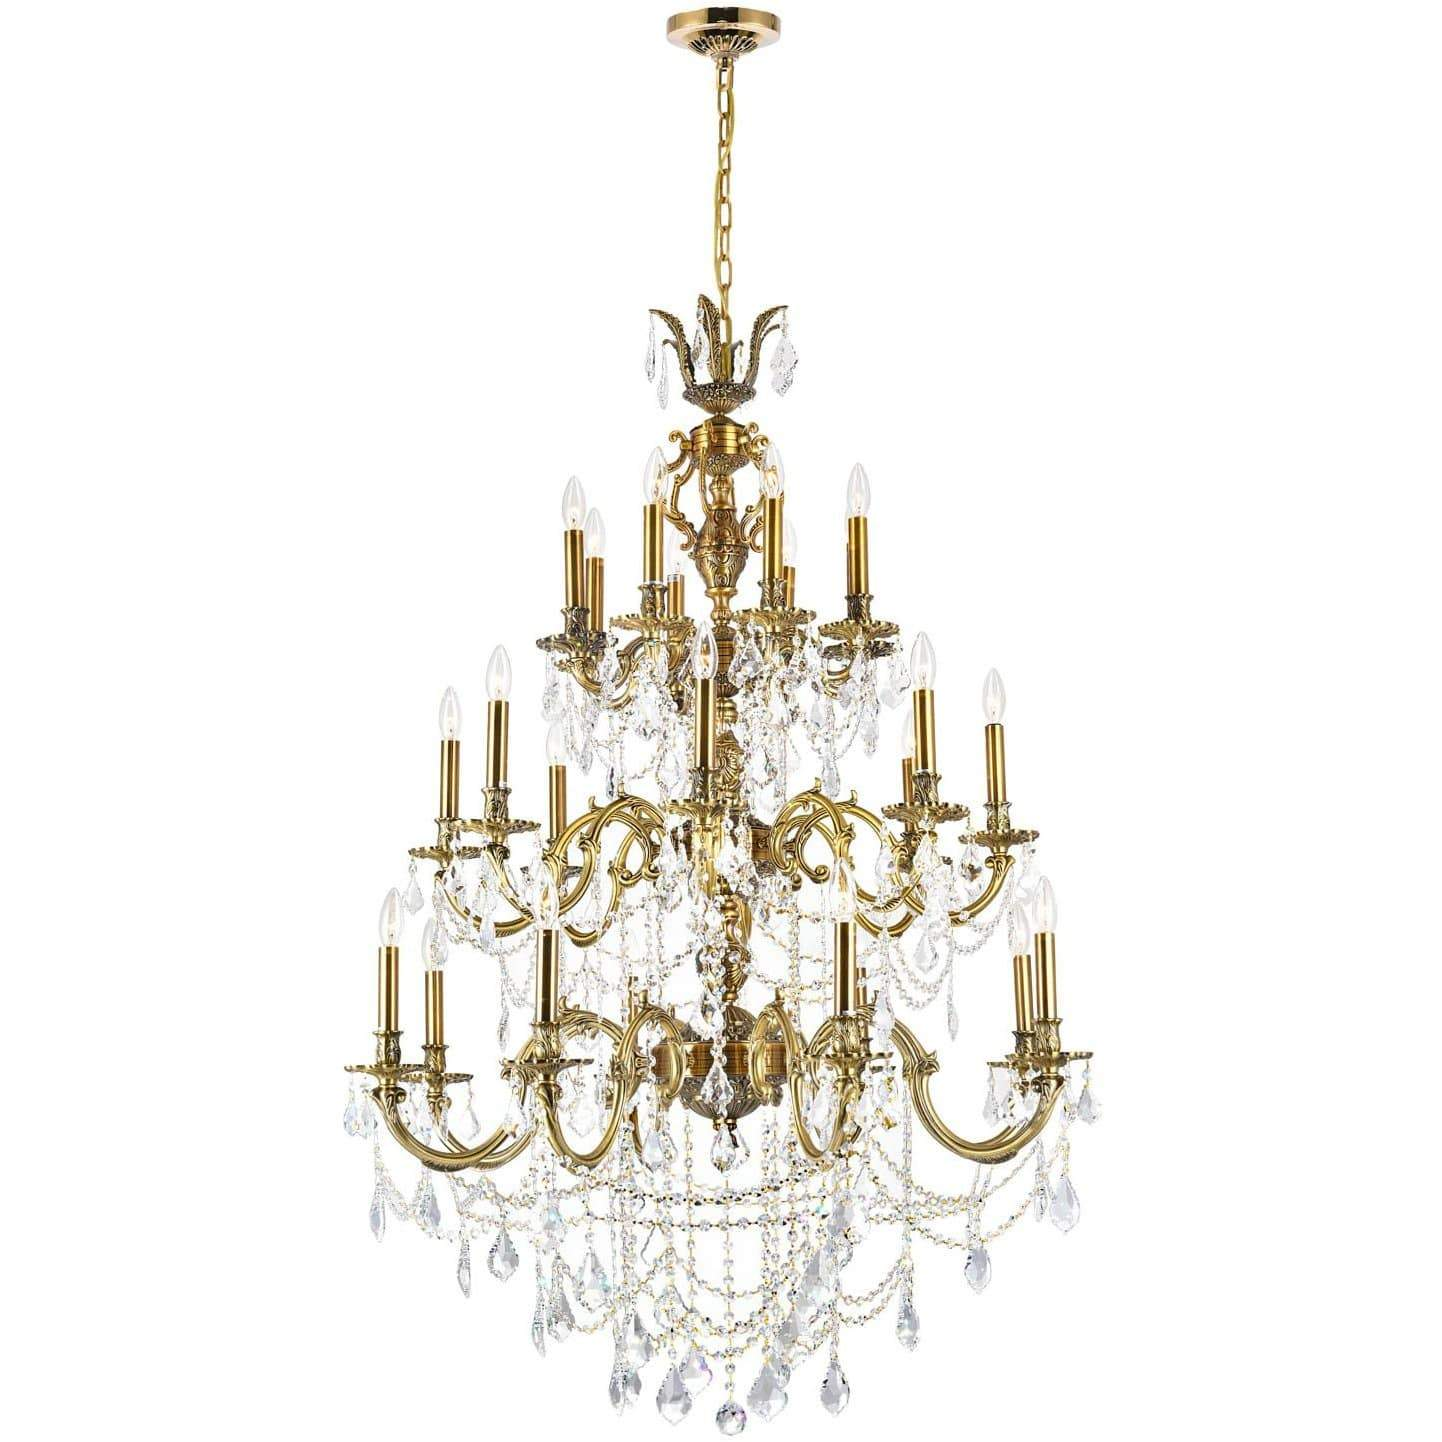 CWI Lighting Chandeliers French Gold / K9 Clear Brass 24 Light Up Chandelier with French Gold finish by CWI Lighting 2039P40GB-24